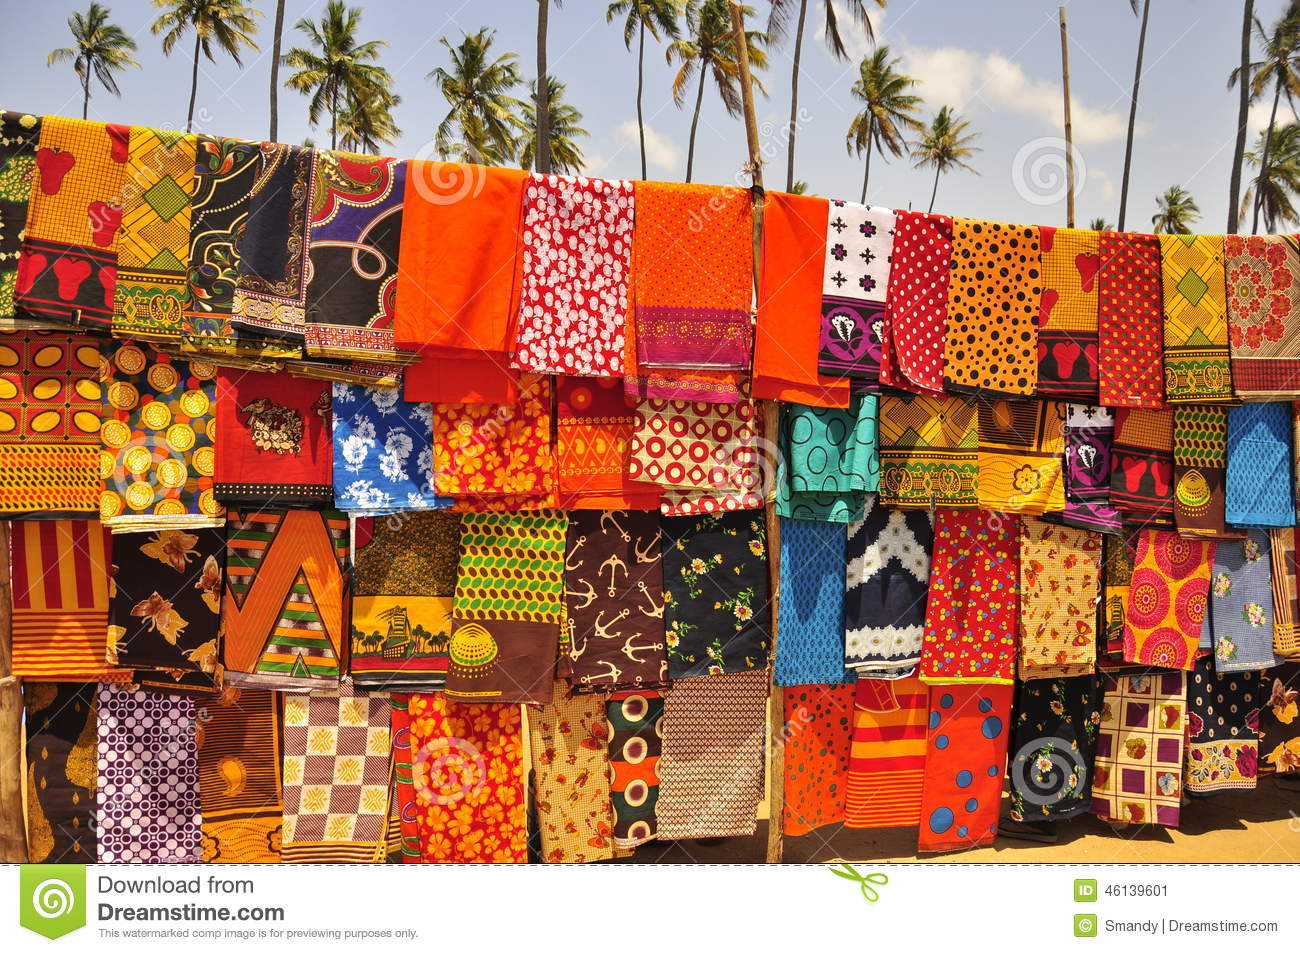 Colorful african market, capulanas fabric in mozambique.